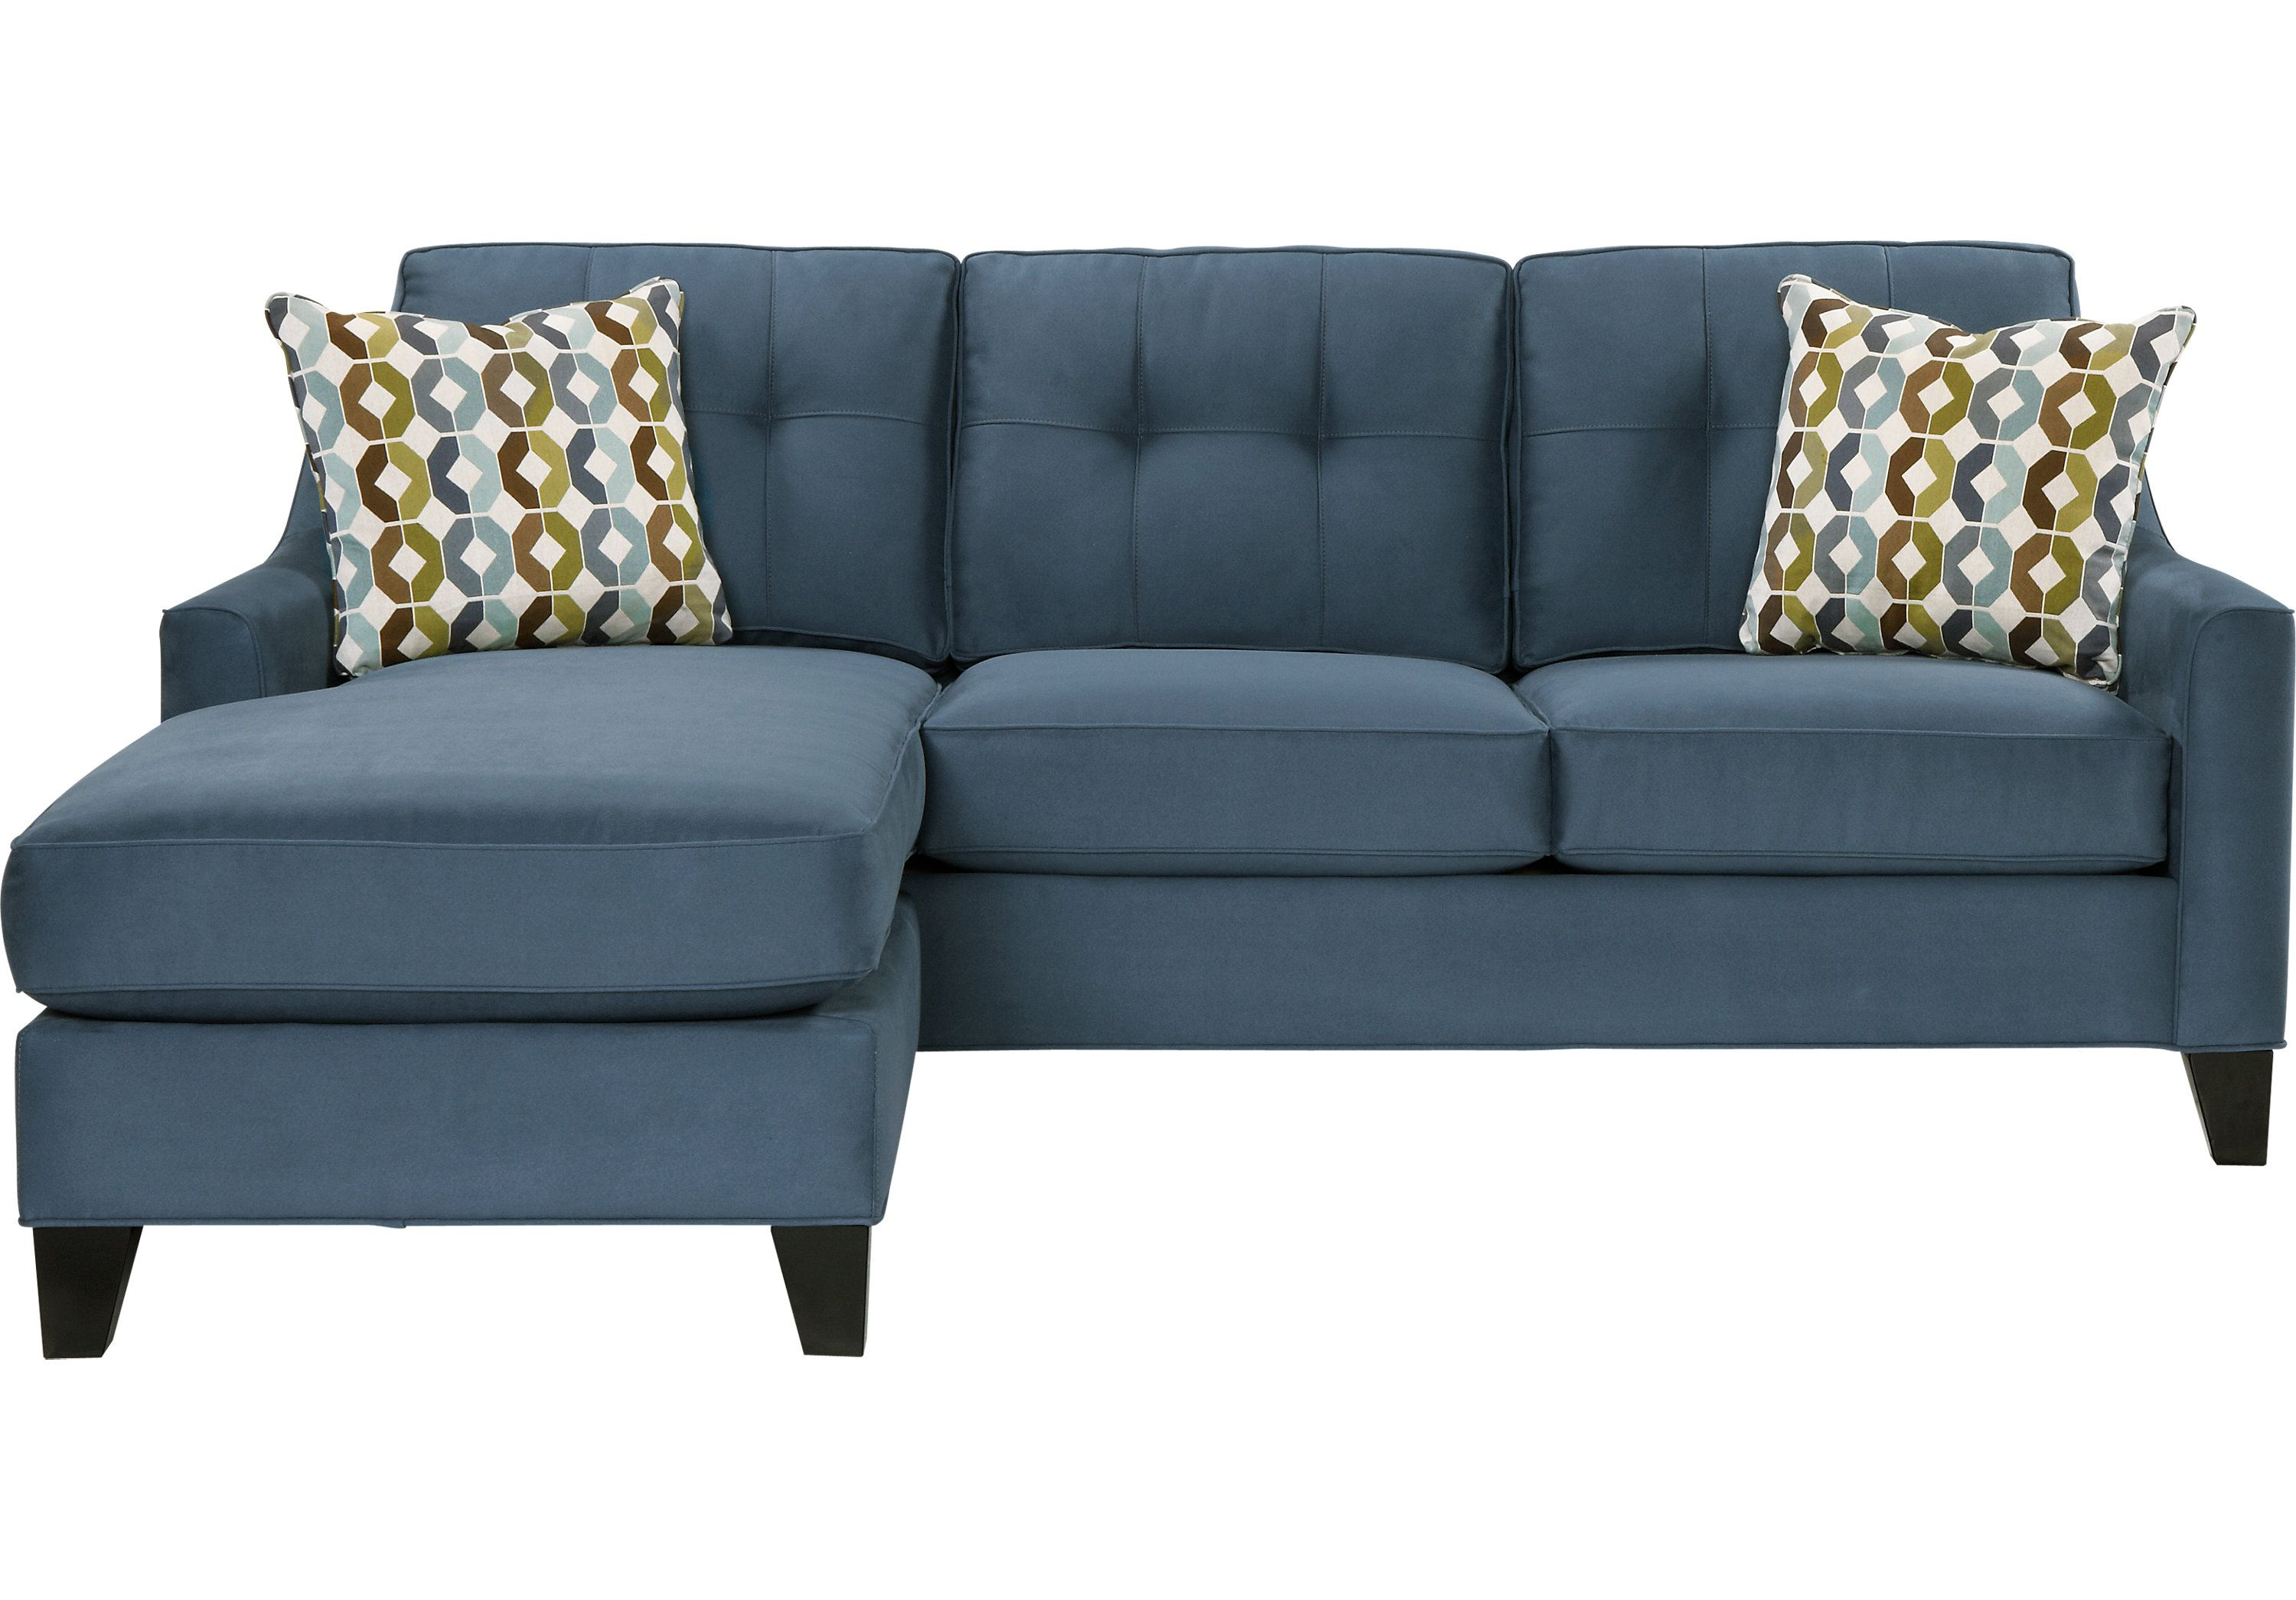 Picture Of Cindy Crawford Madison Place Indigo 2pc Sectional From  # Muebles Pikeando